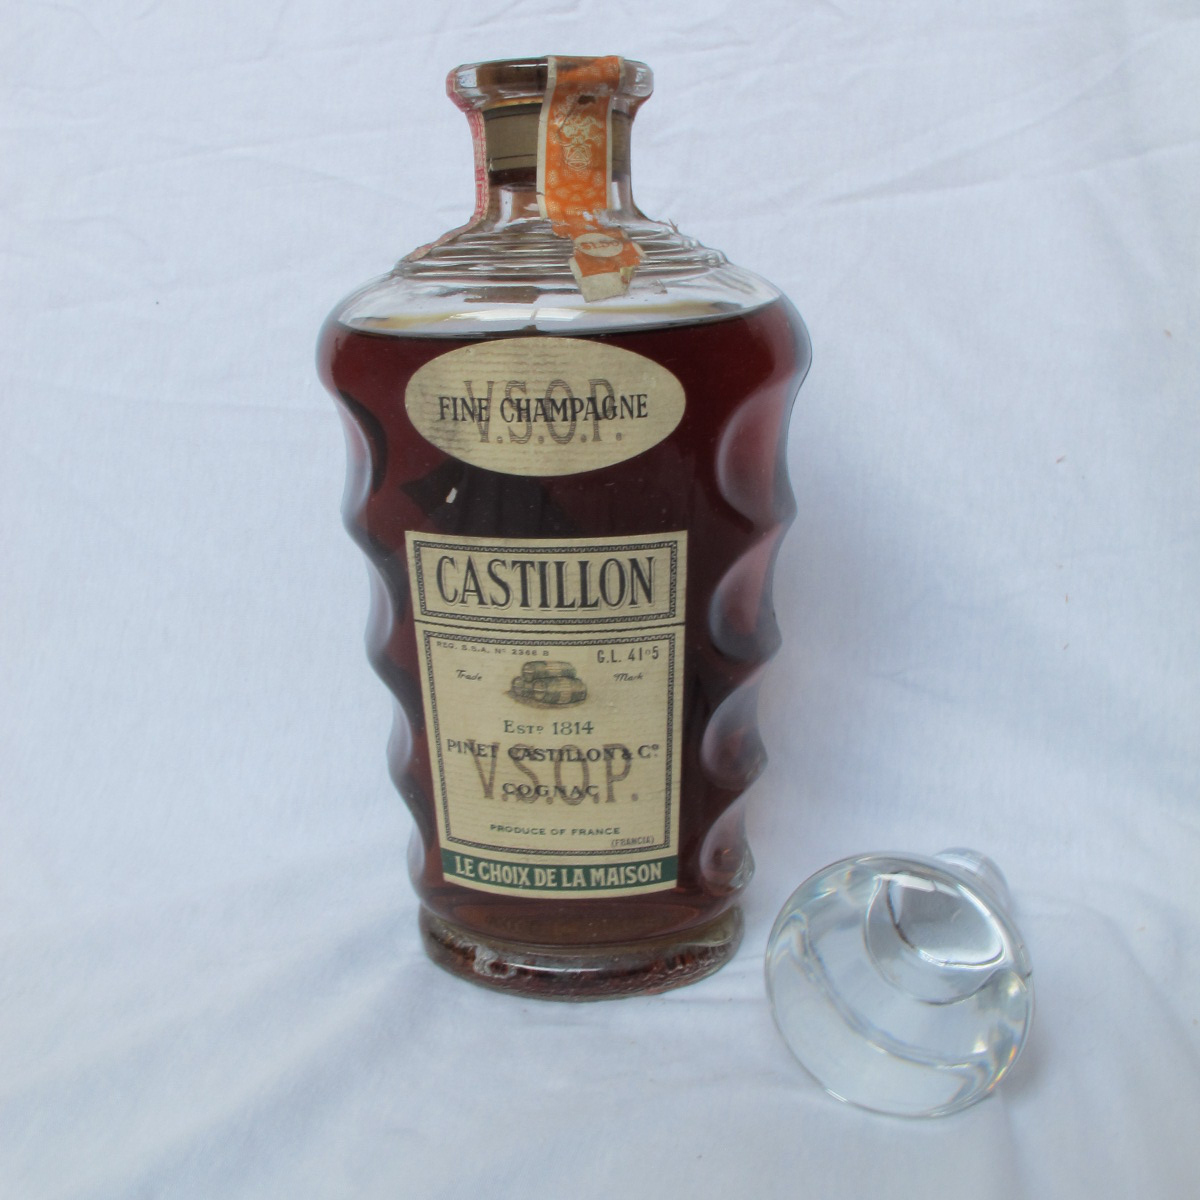 Reader has Baccarat Pinet Castillon VSOP Fine Champagne Cognac at home